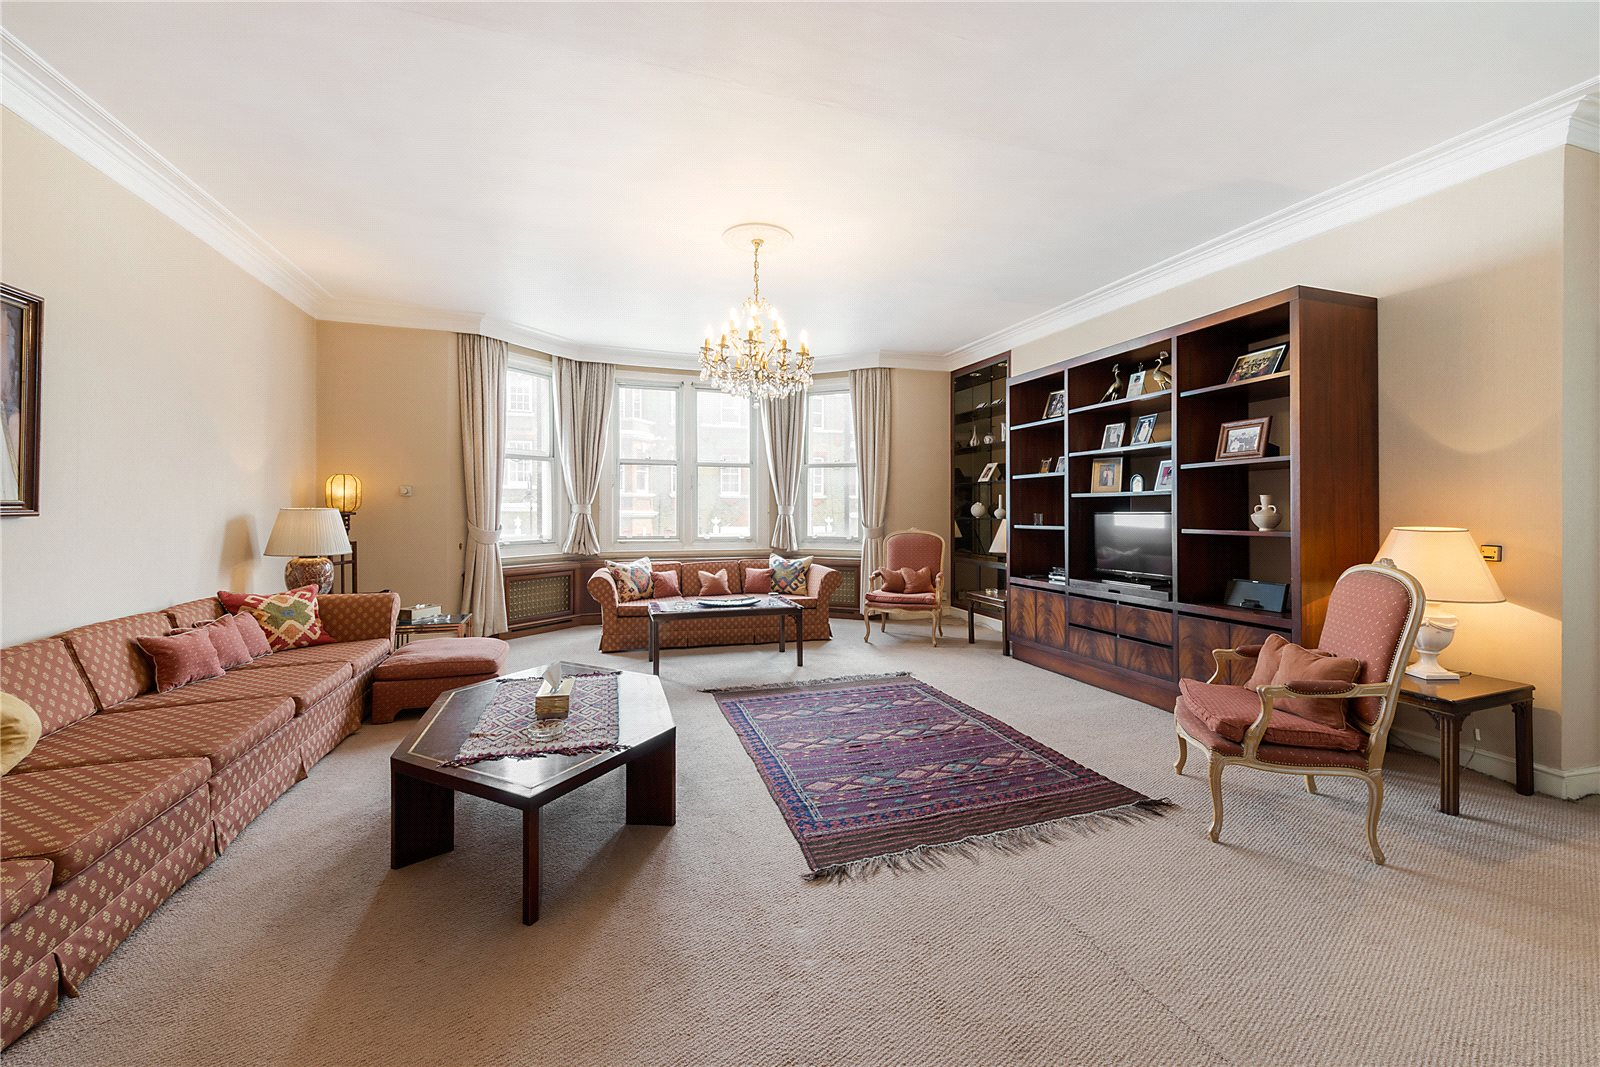 Apartments / Residences for Sale at Pont Street, Knightsbridge, London, SW1X Knightsbridge, London, England